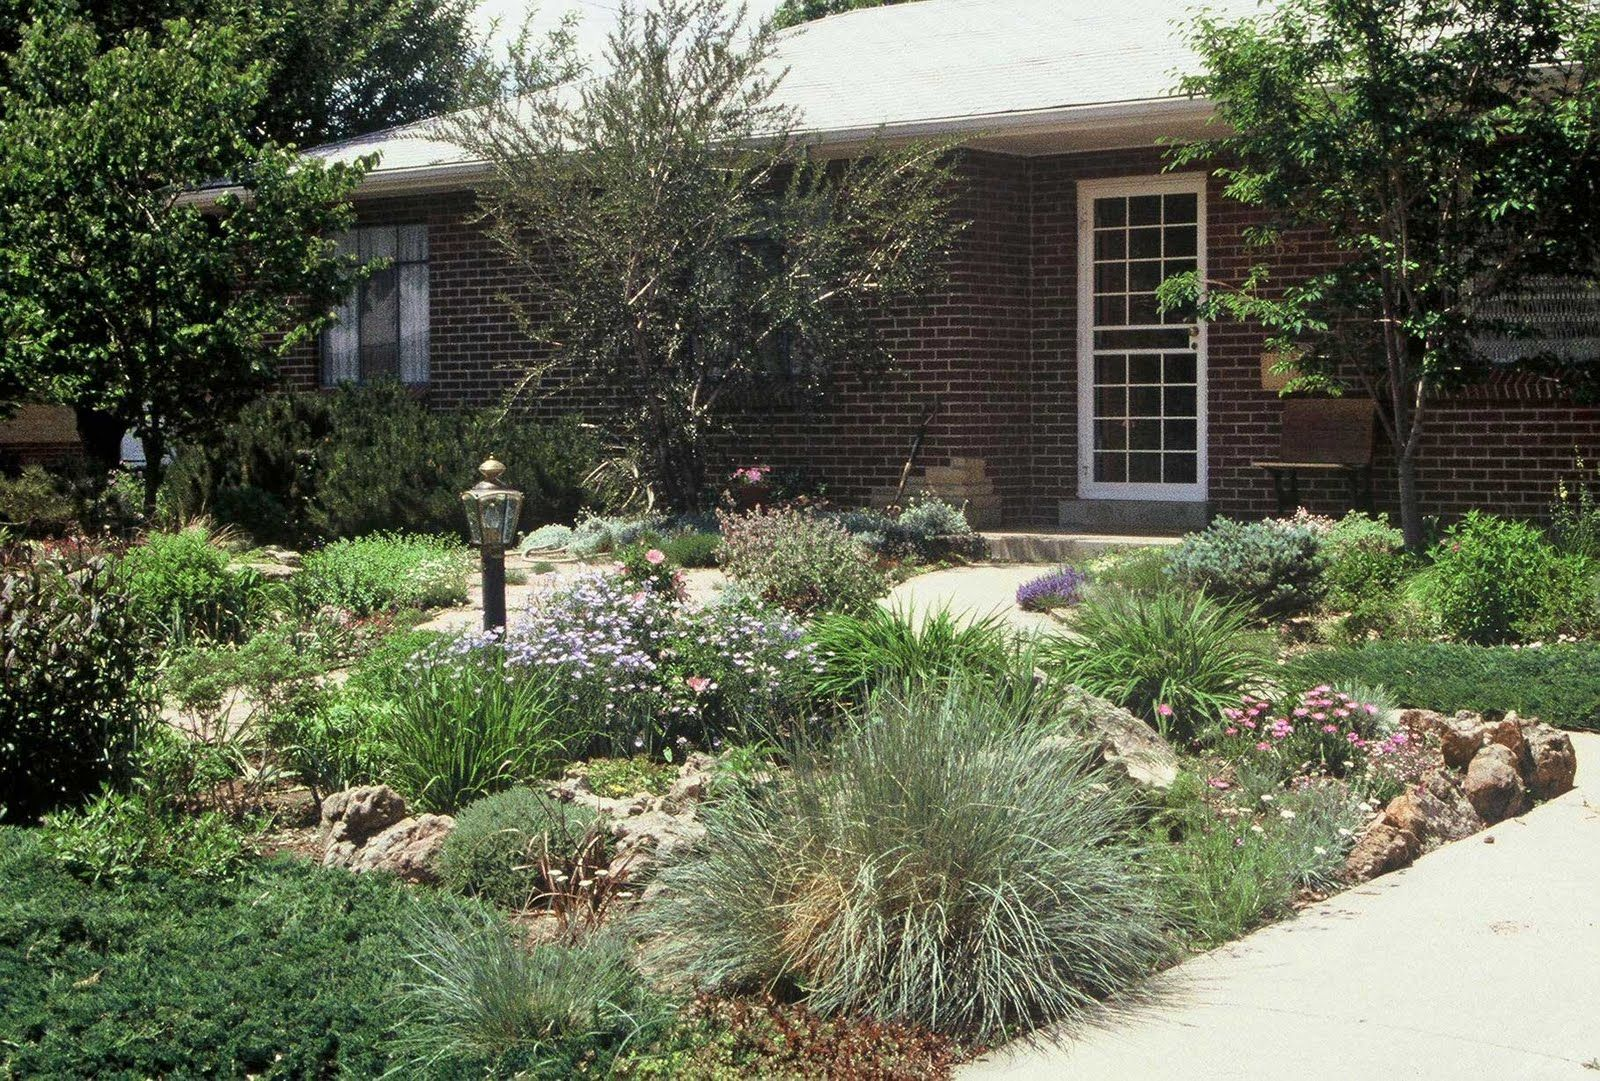 Simple landscaping ideas for front yards backyard ideas for Simple front garden designs